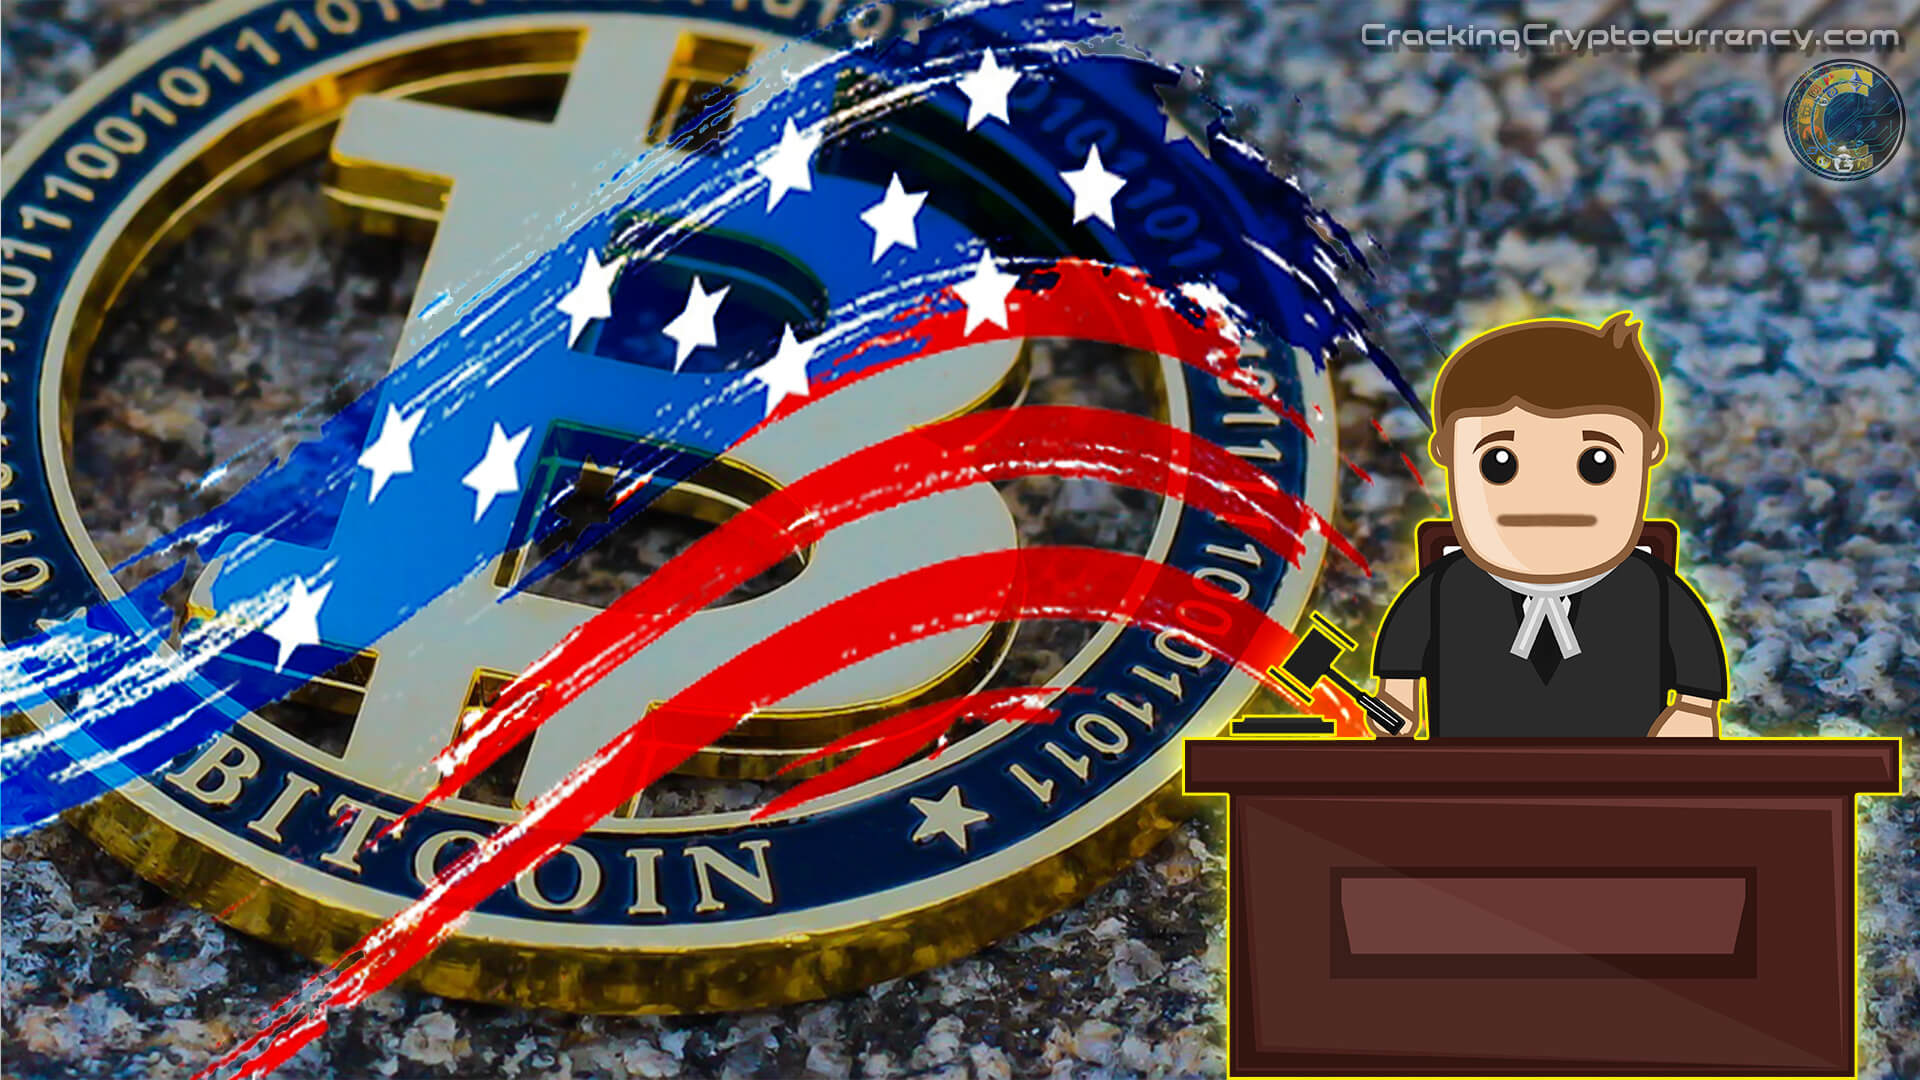 court-judge-cartoon-with-metal-bitcoin-graphic-background-with-cool-american-flag-overlay